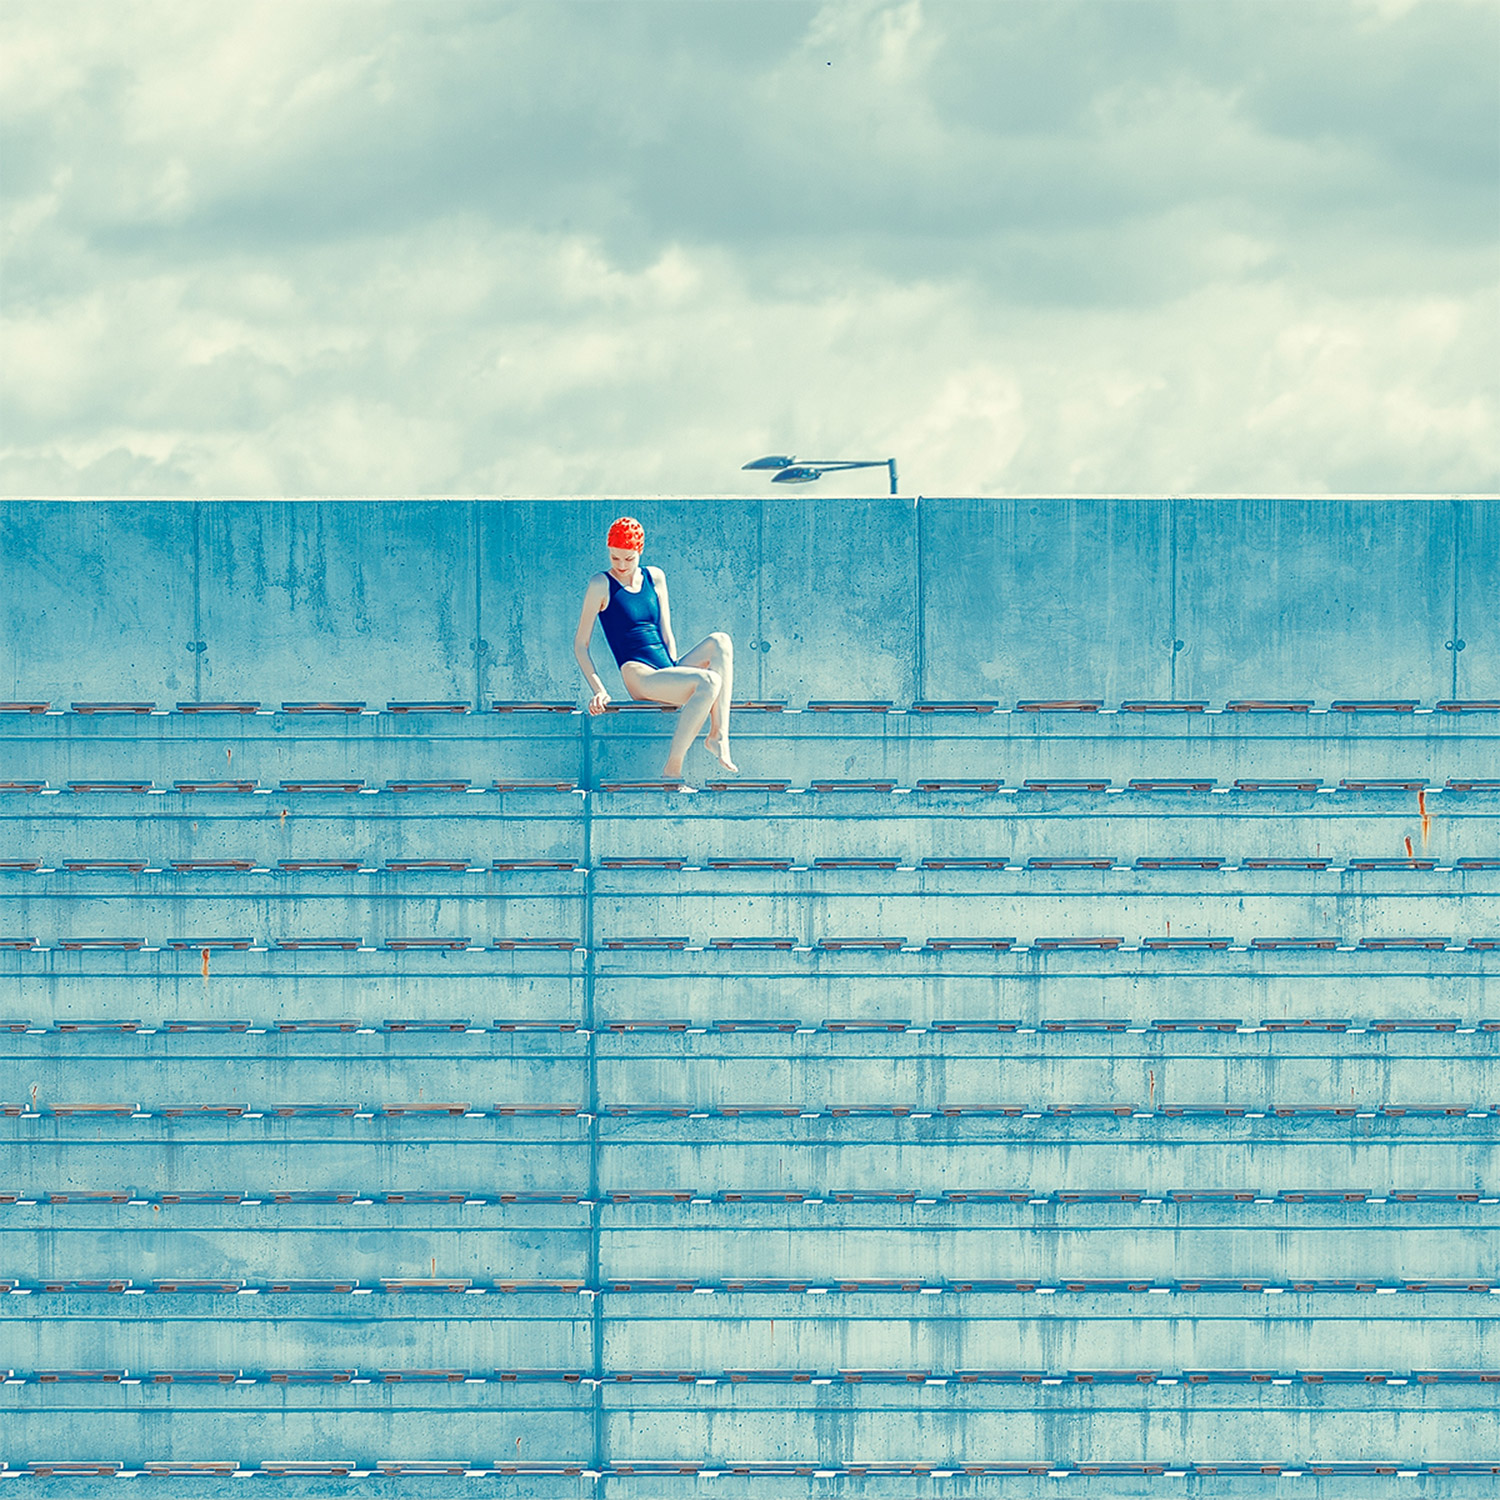 Maria Svarbova - The Tribune, on bleachers